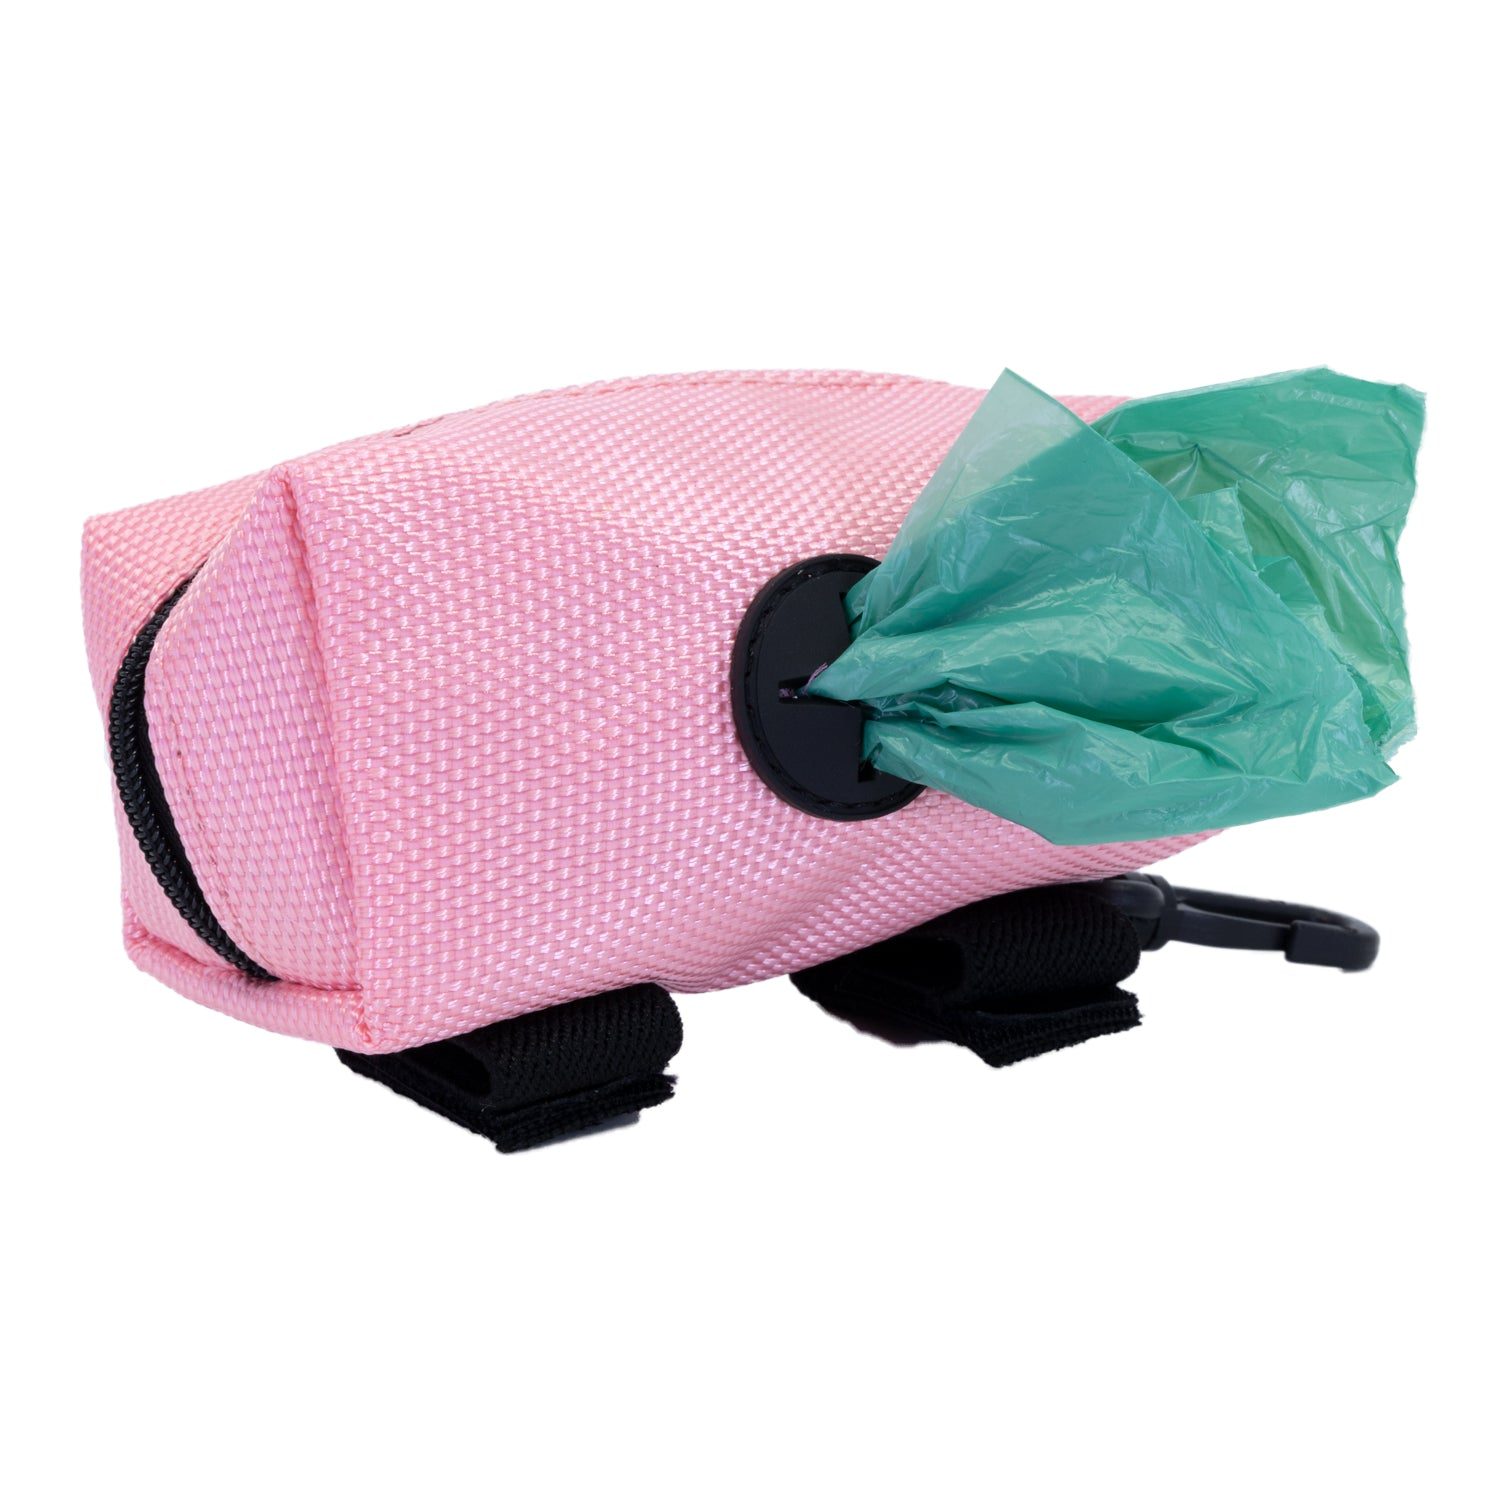 dog-bag-carrier-poop-bag-holder-pink-with-dog-bag